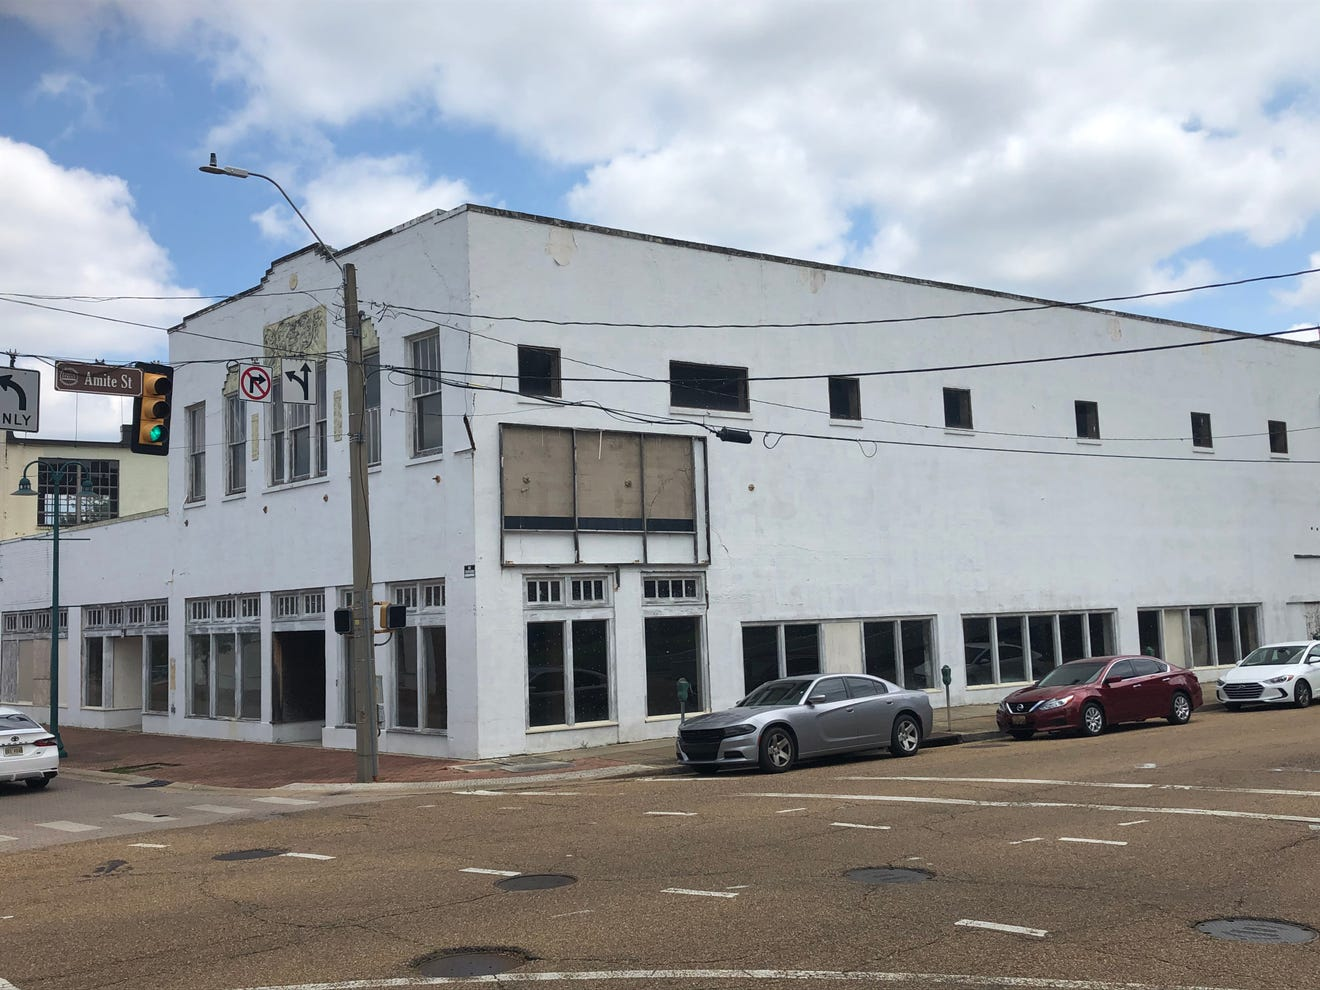 Plan for Farish Street Property Could Bring Culinary Food Hall To Historic District